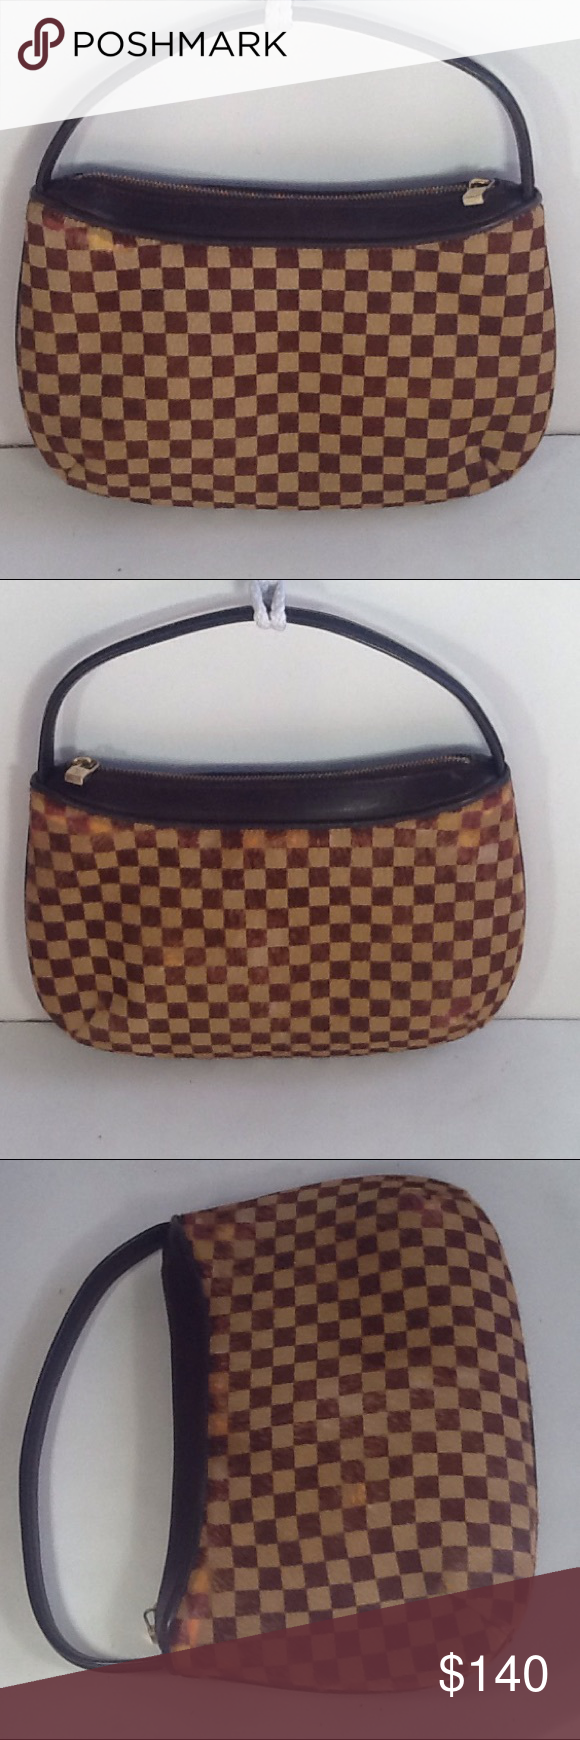 a001a19805dd Authentic Louis Vuitton Damier Sauvage Tigre Bag. Some discoloration are on  the suede. The